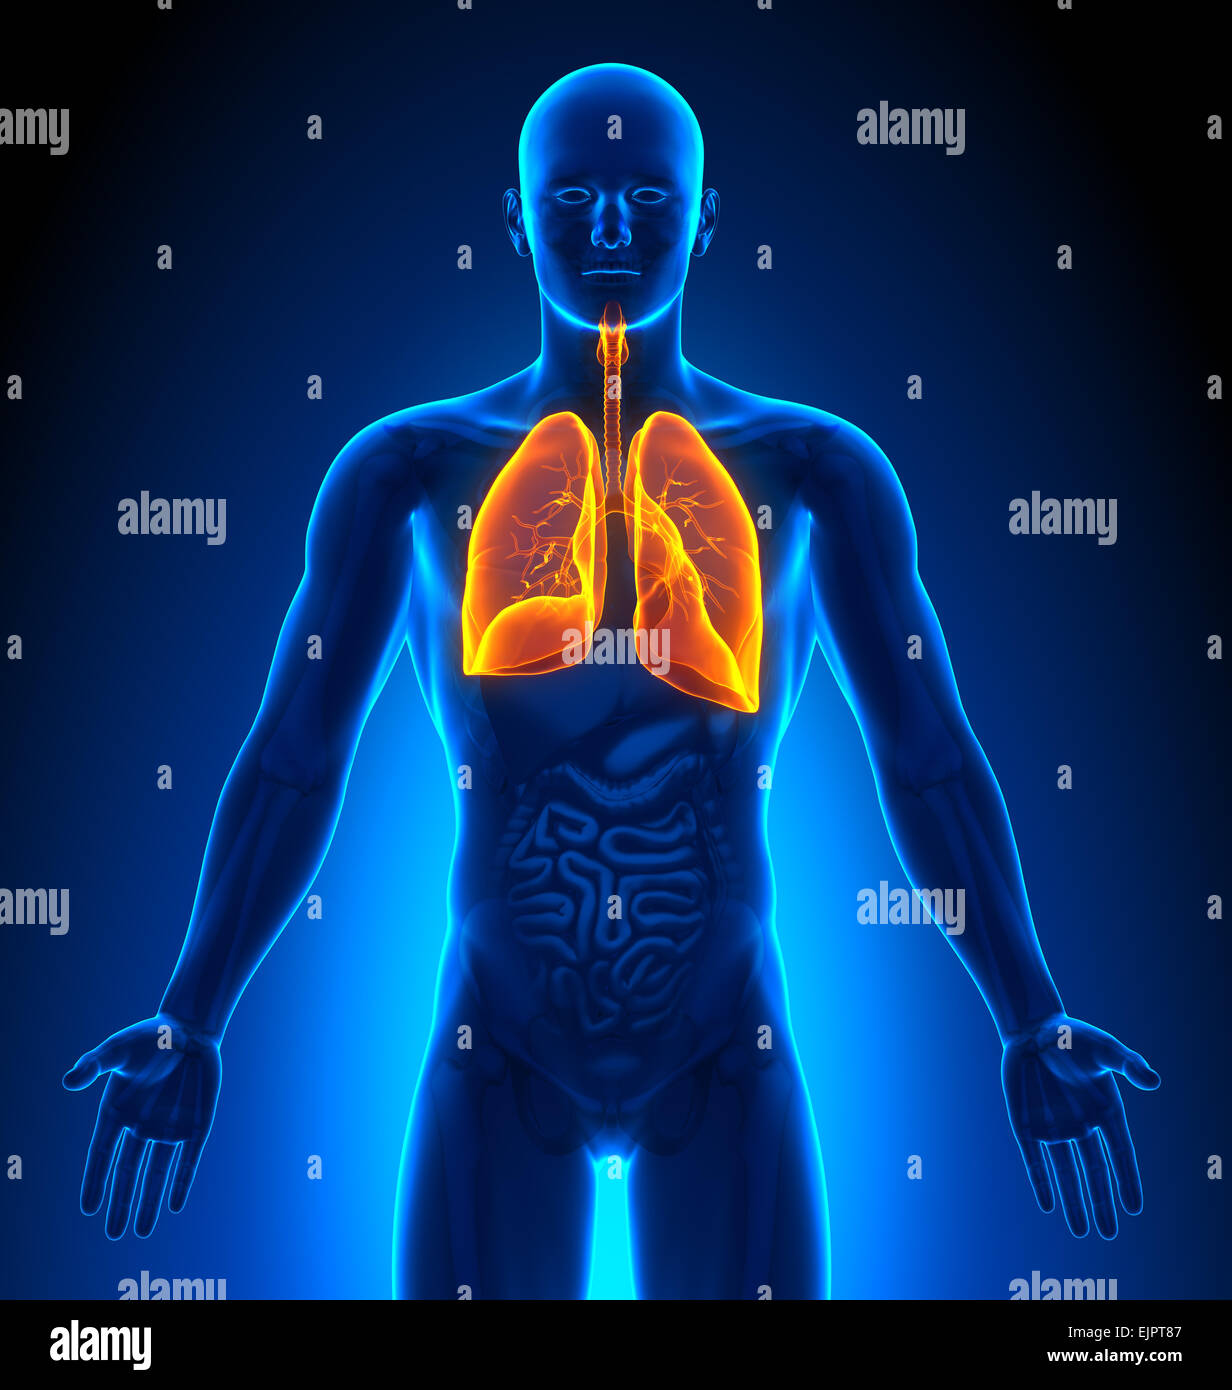 Male Lungs Anatomy xray view - Stock Image